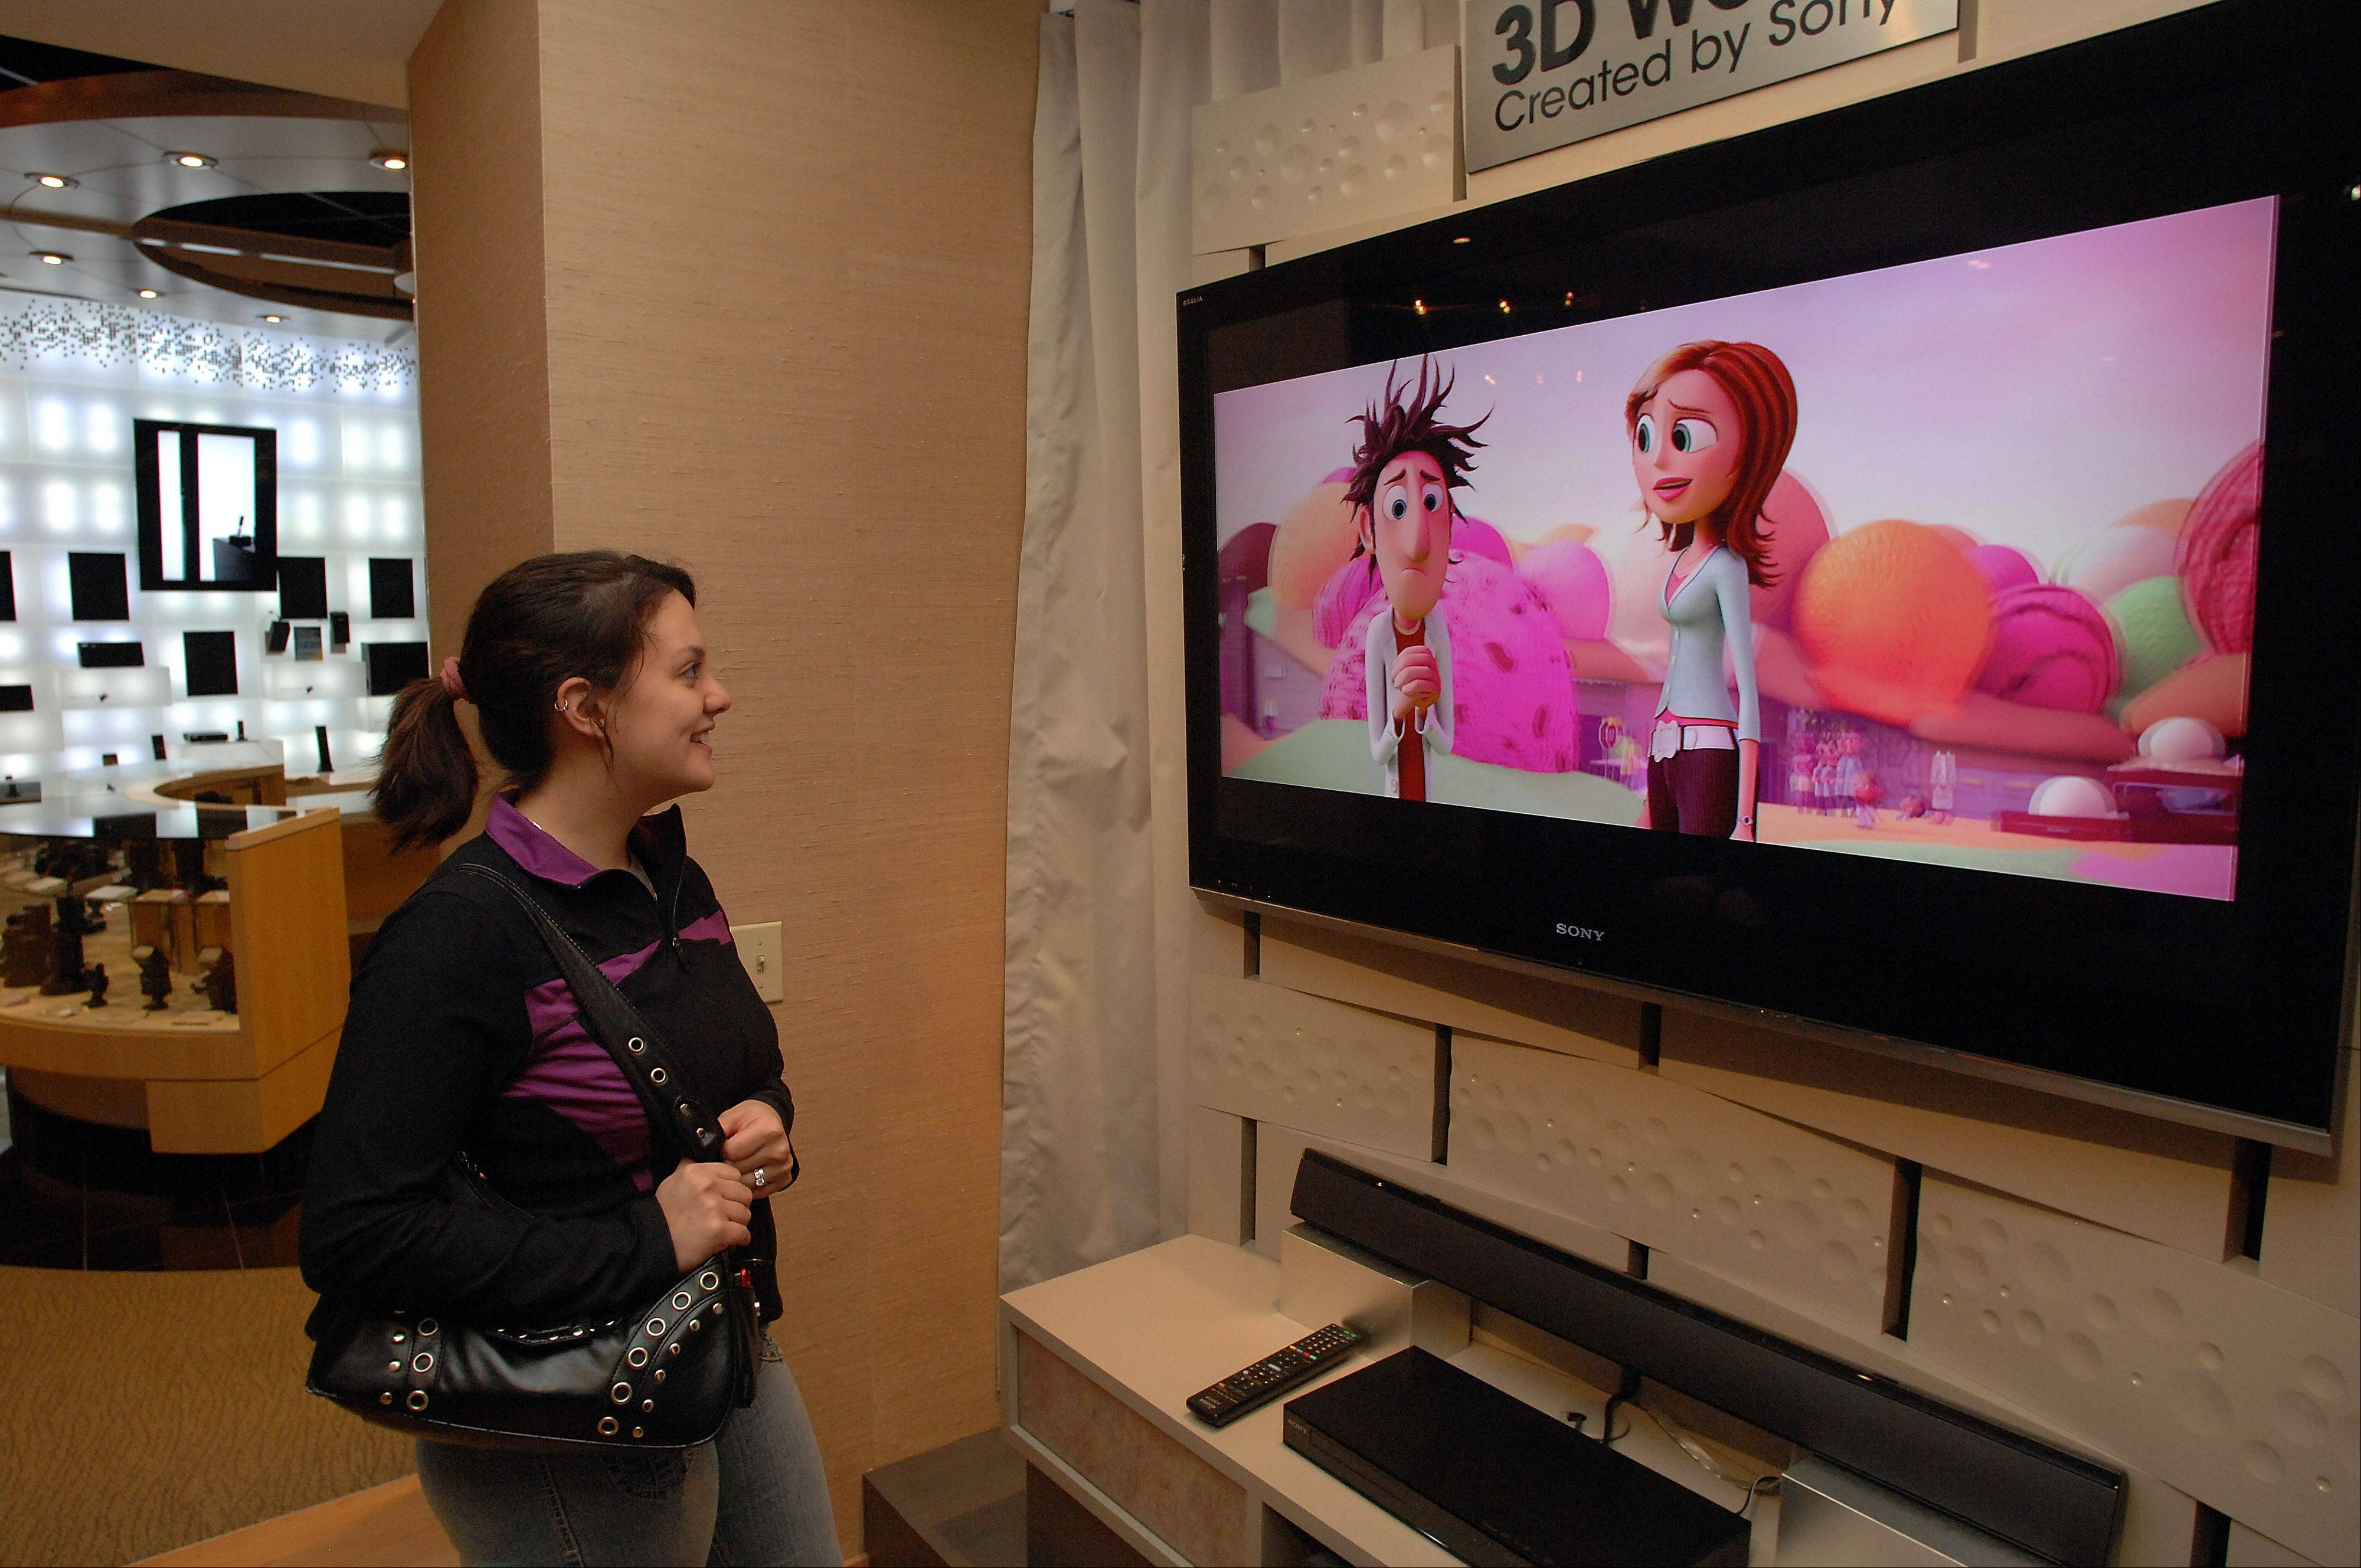 If you're looking for top-brand TVs or TVs with extra features, the best time to buy is February or March, experts say.